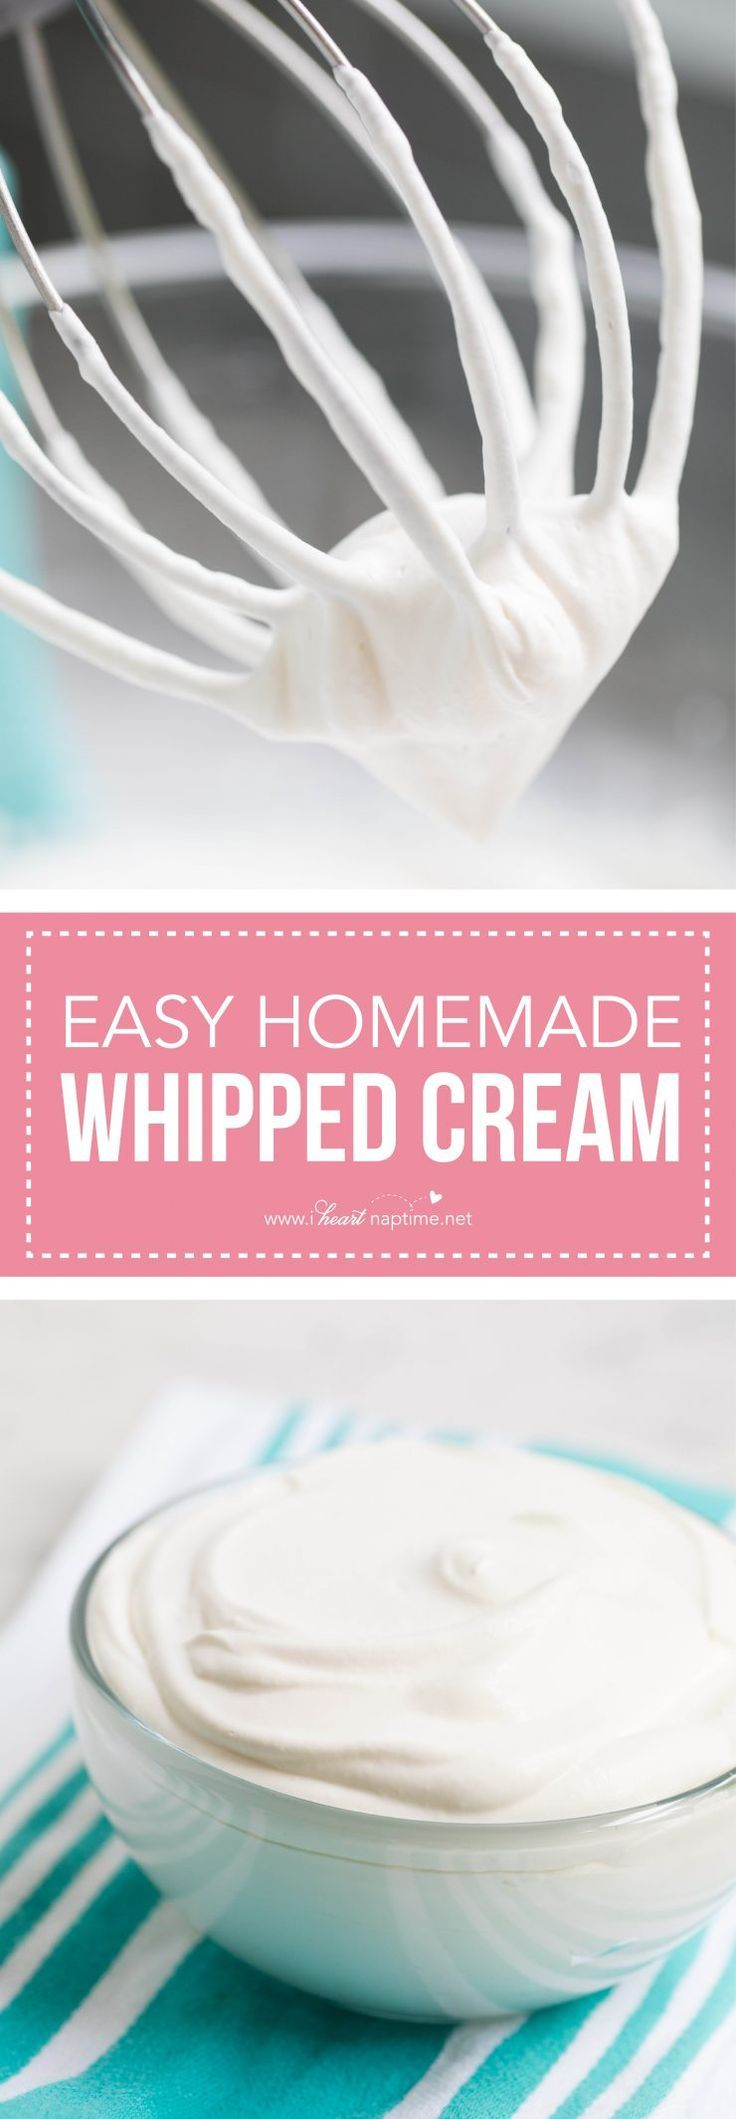 Simple homemade whipped cream -made with only 3 ingredients in less than 5 minutes!